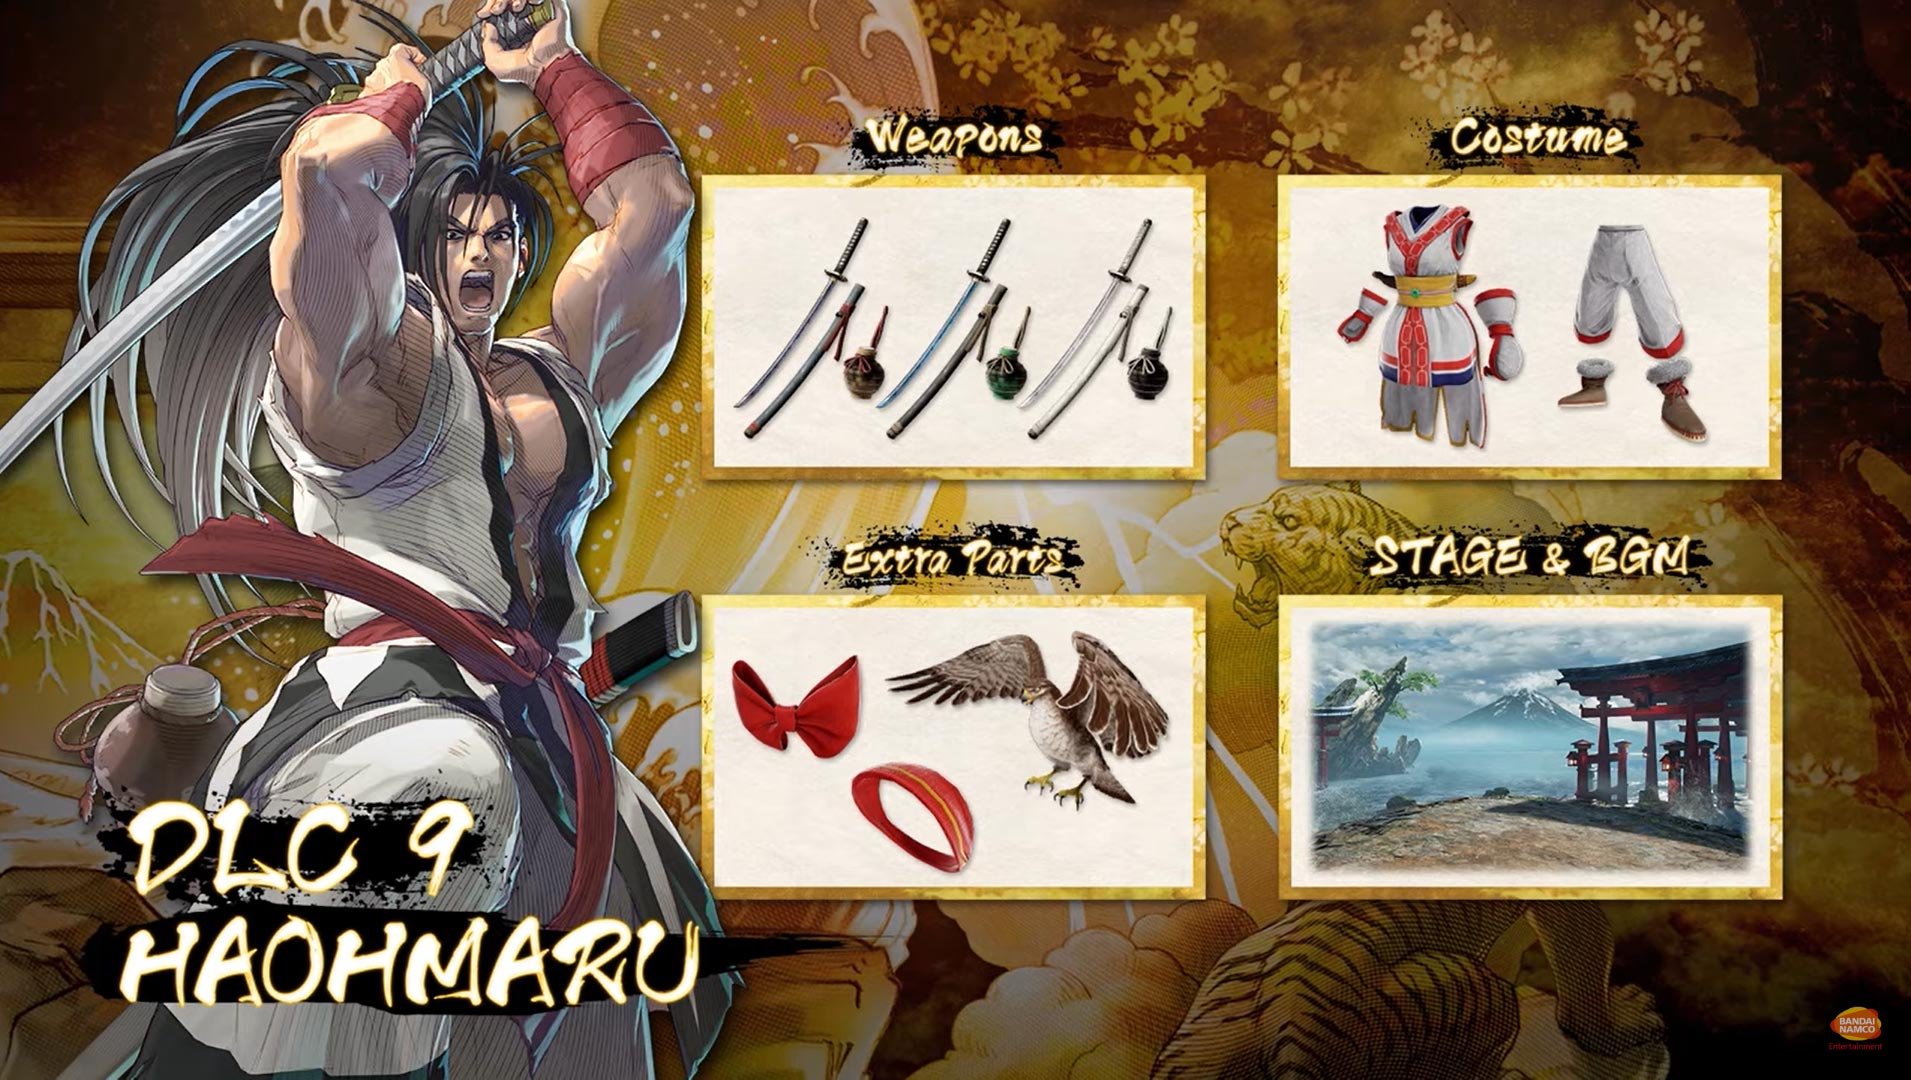 Haohmaru release date trailer 9 out of 9 image gallery